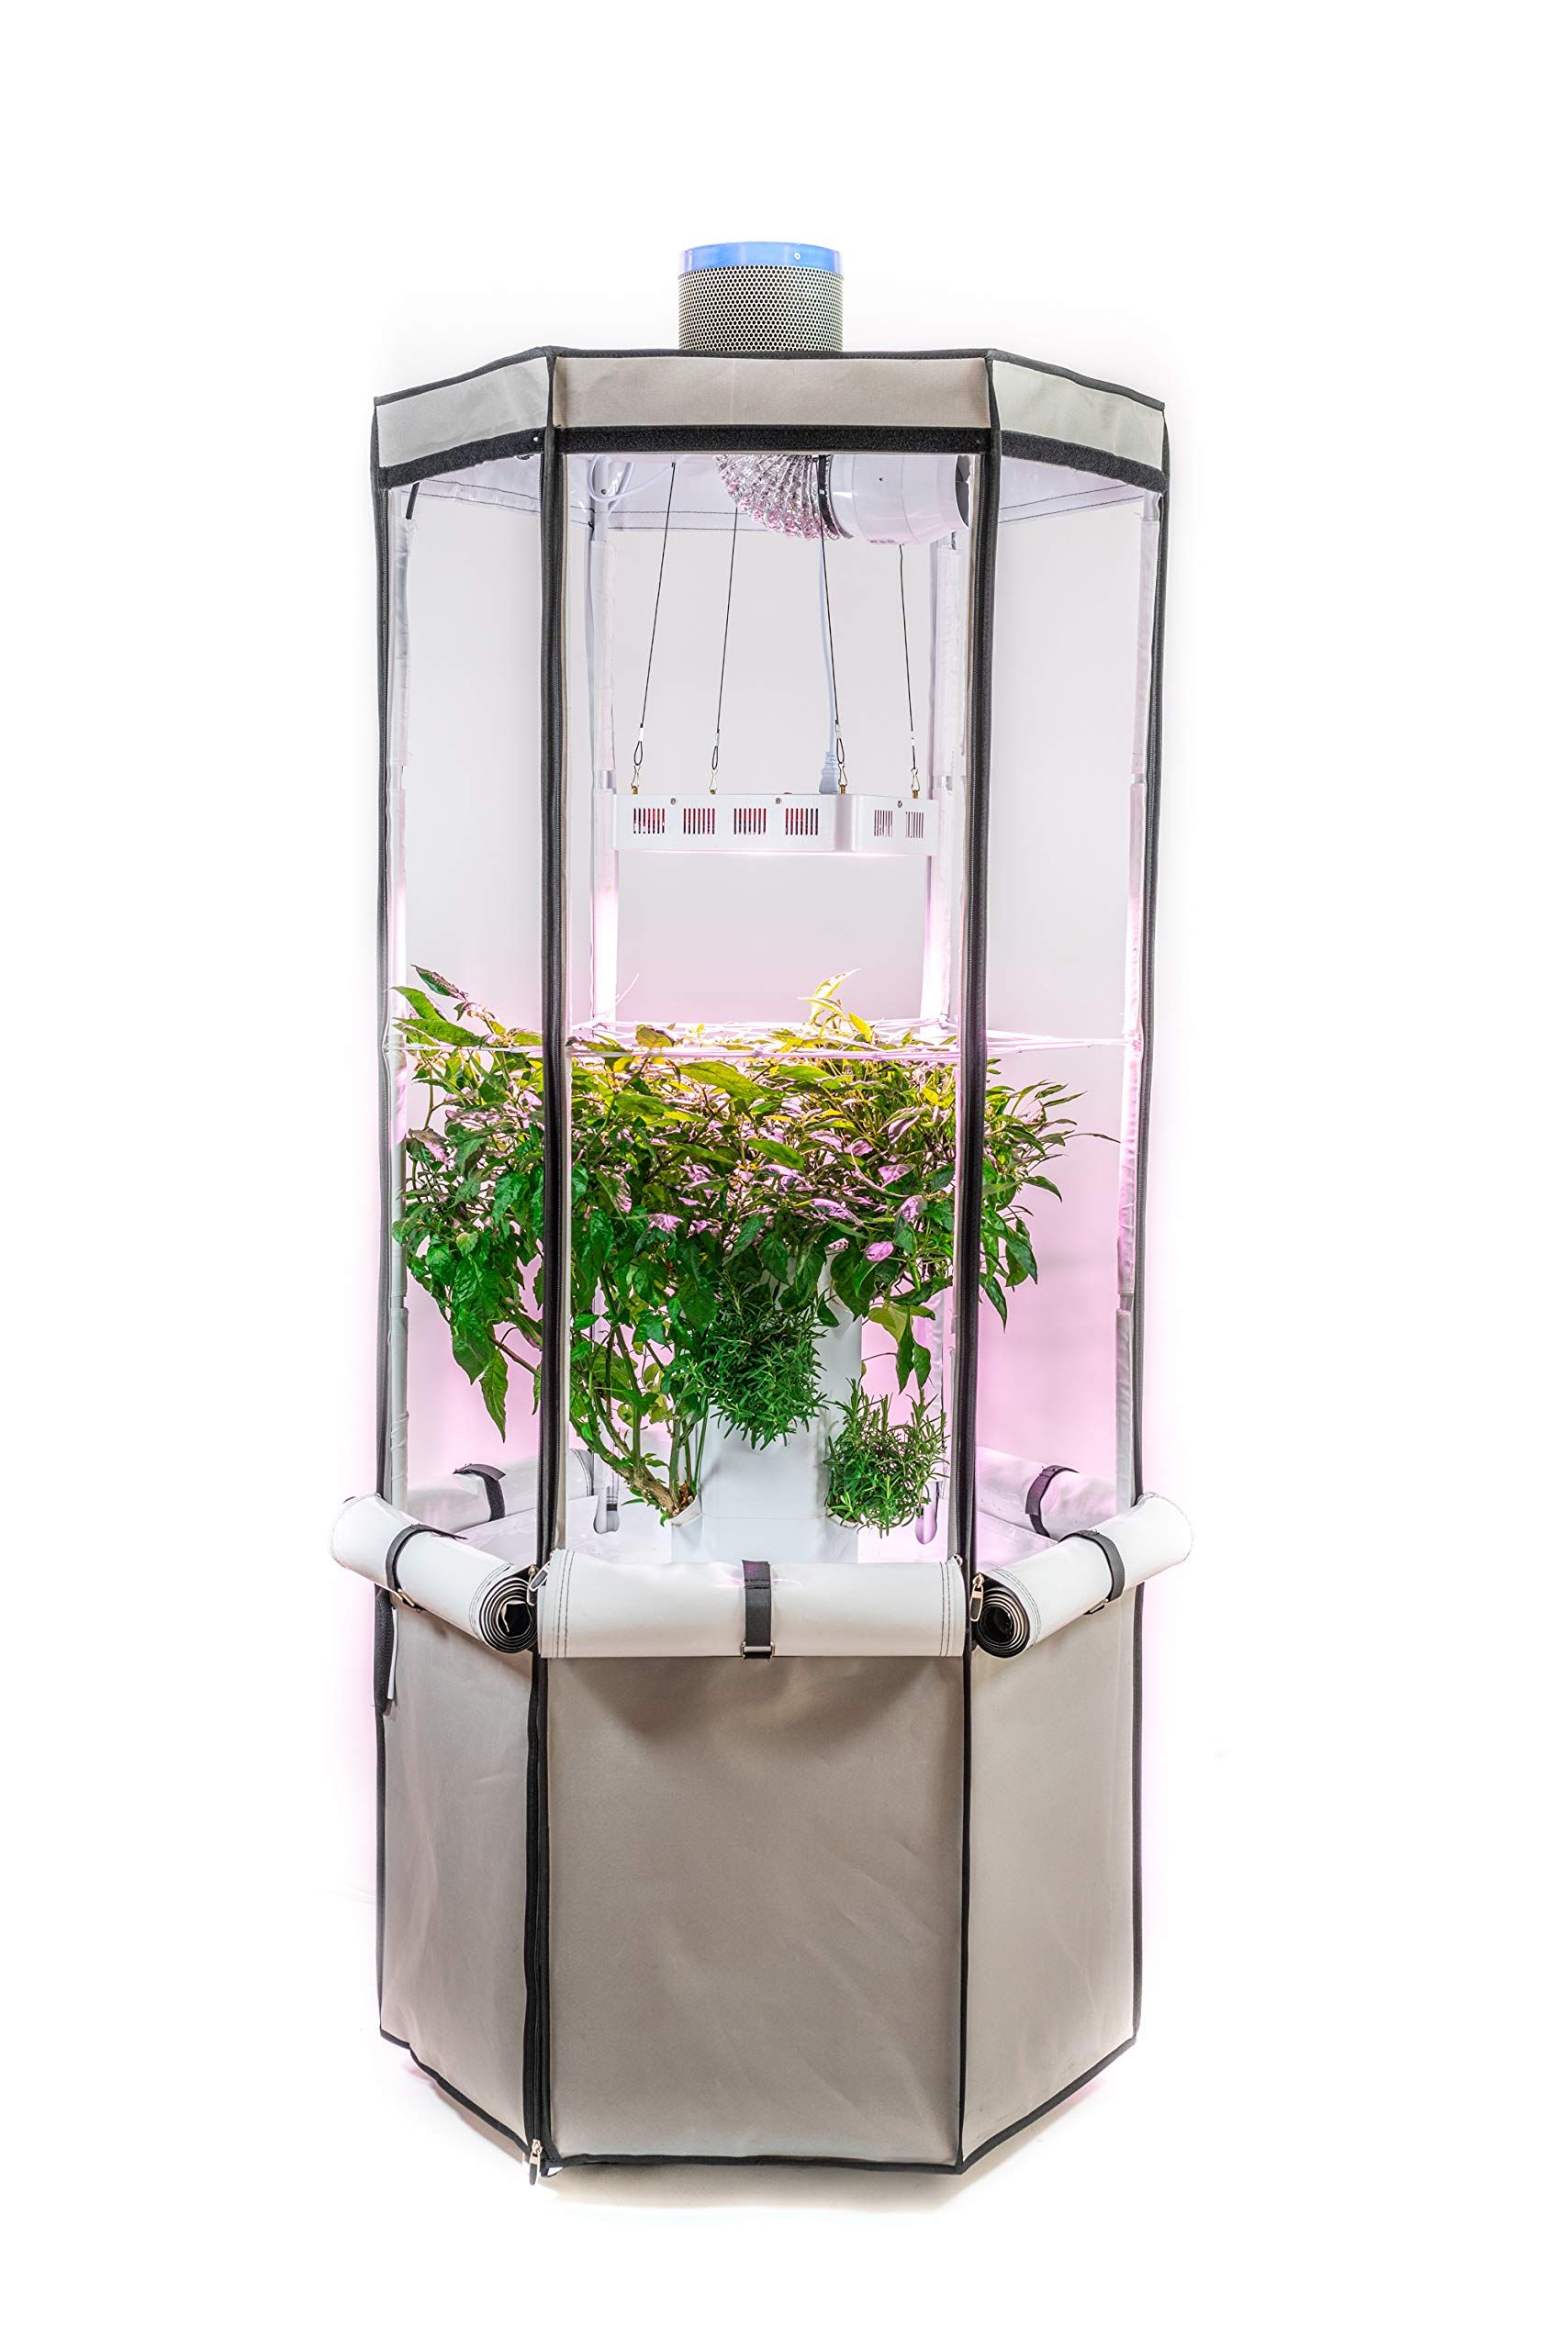 1500W Vertical Hydroponic Grow Kit Tower Click image